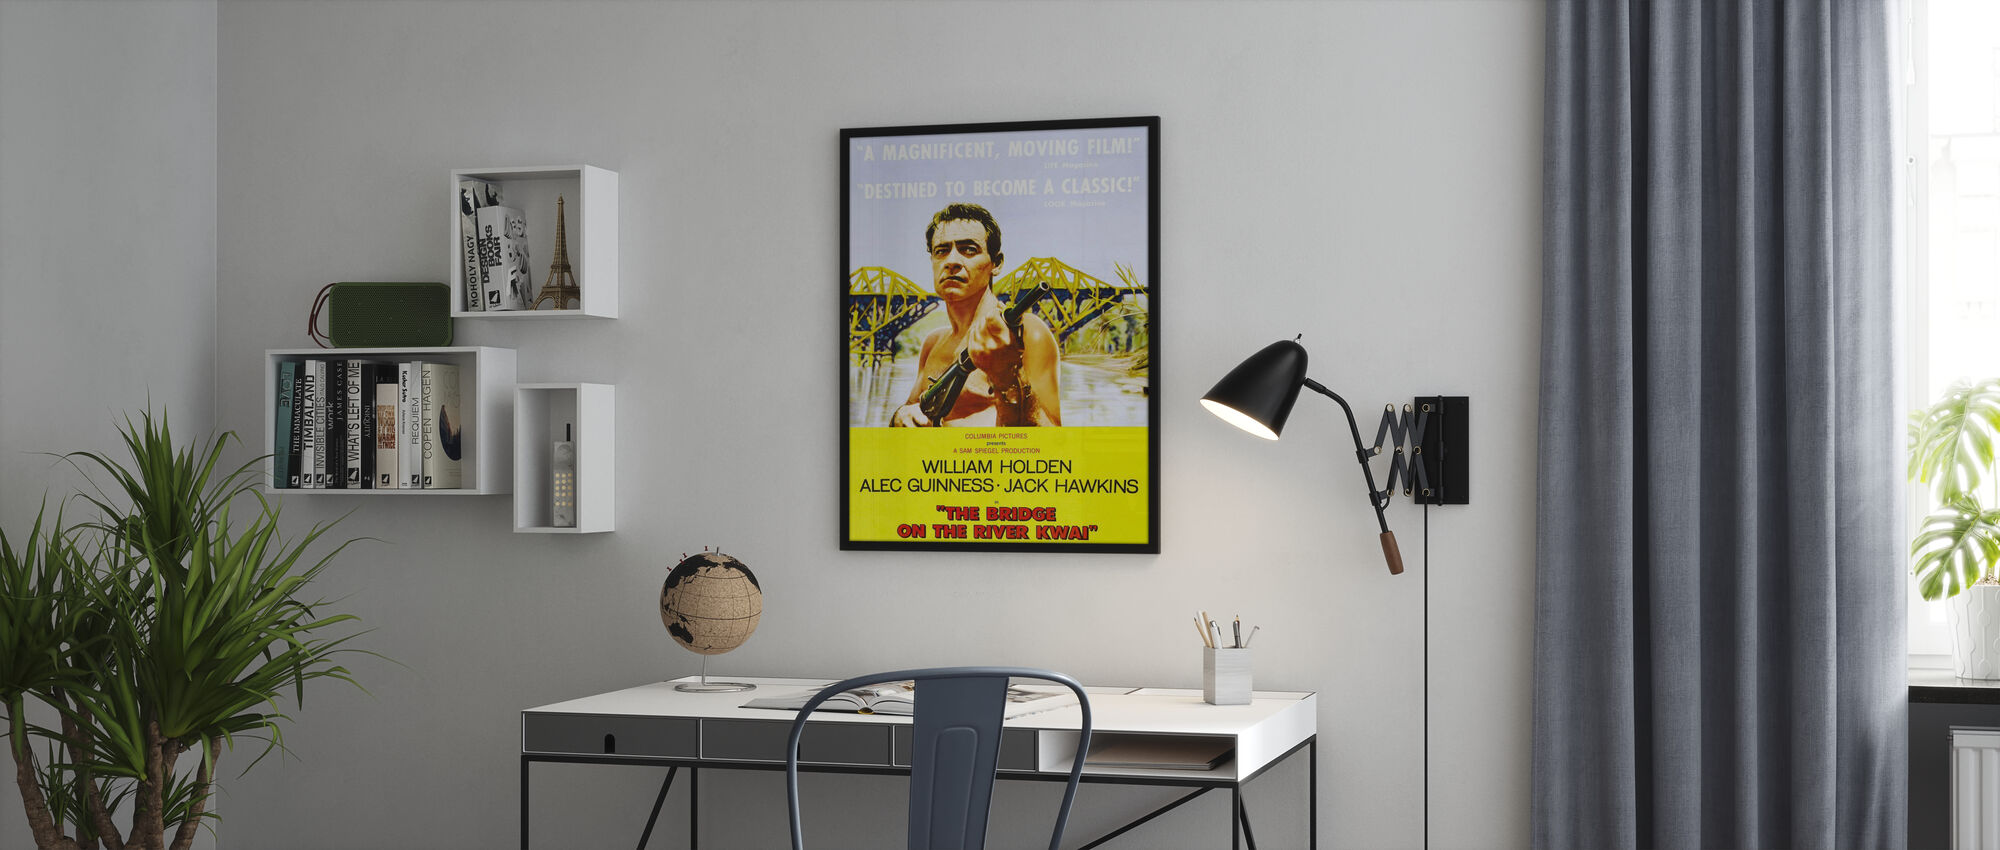 Bridge on the River Kwai - Poster - Office